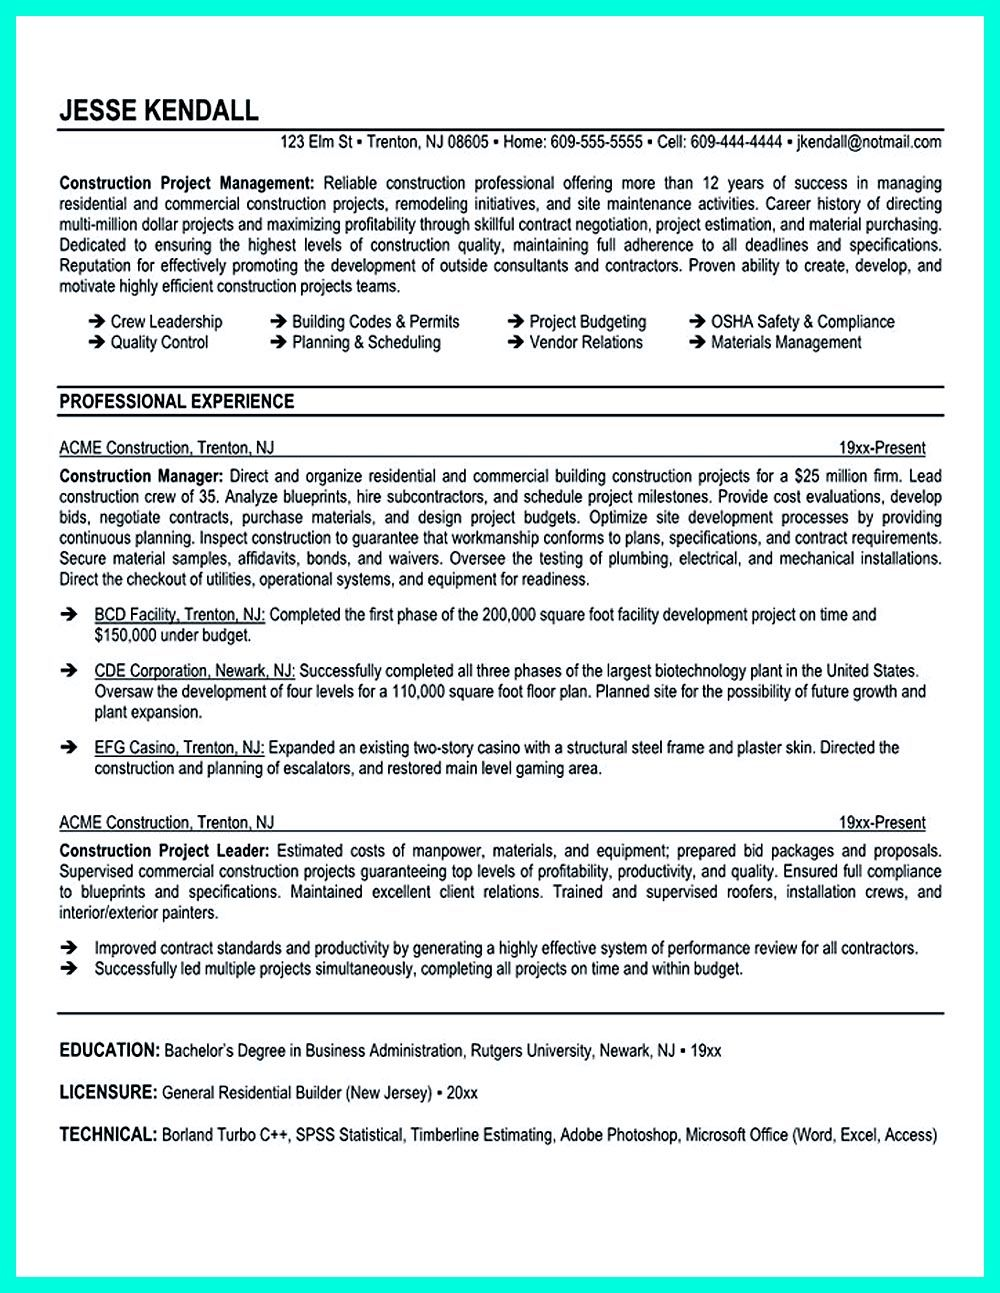 Manager Resume Construction Project Manager Resume For Experienced One Must Be